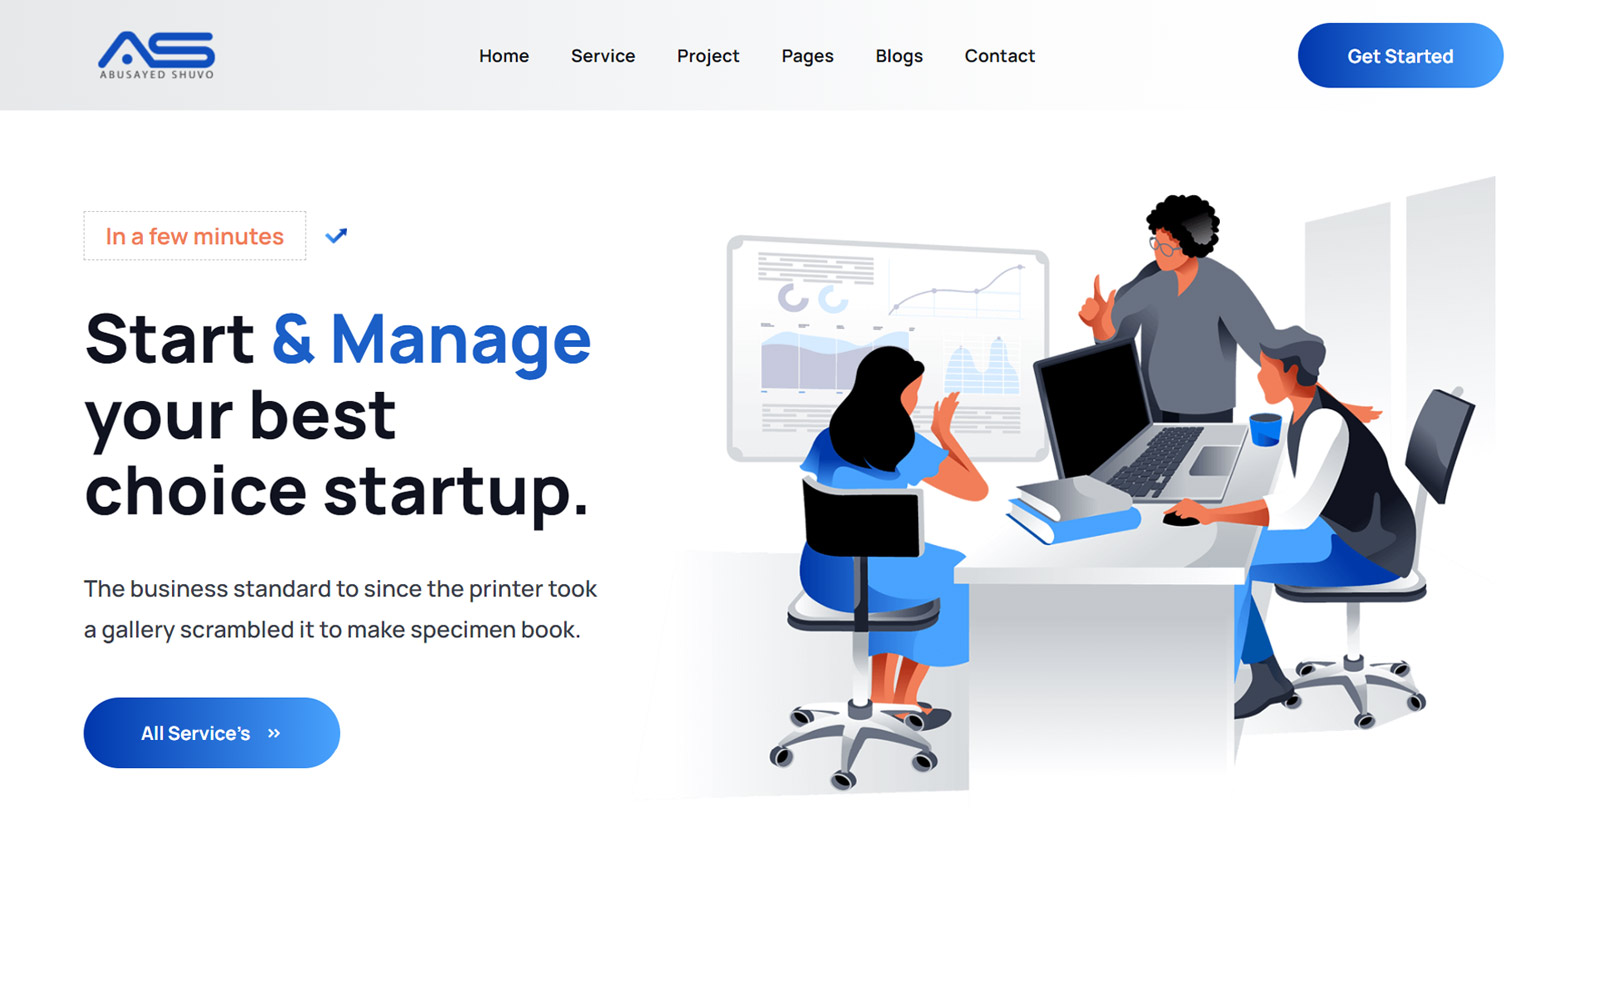 Abusayed - Startup Agency Bootstrap 5 Website template